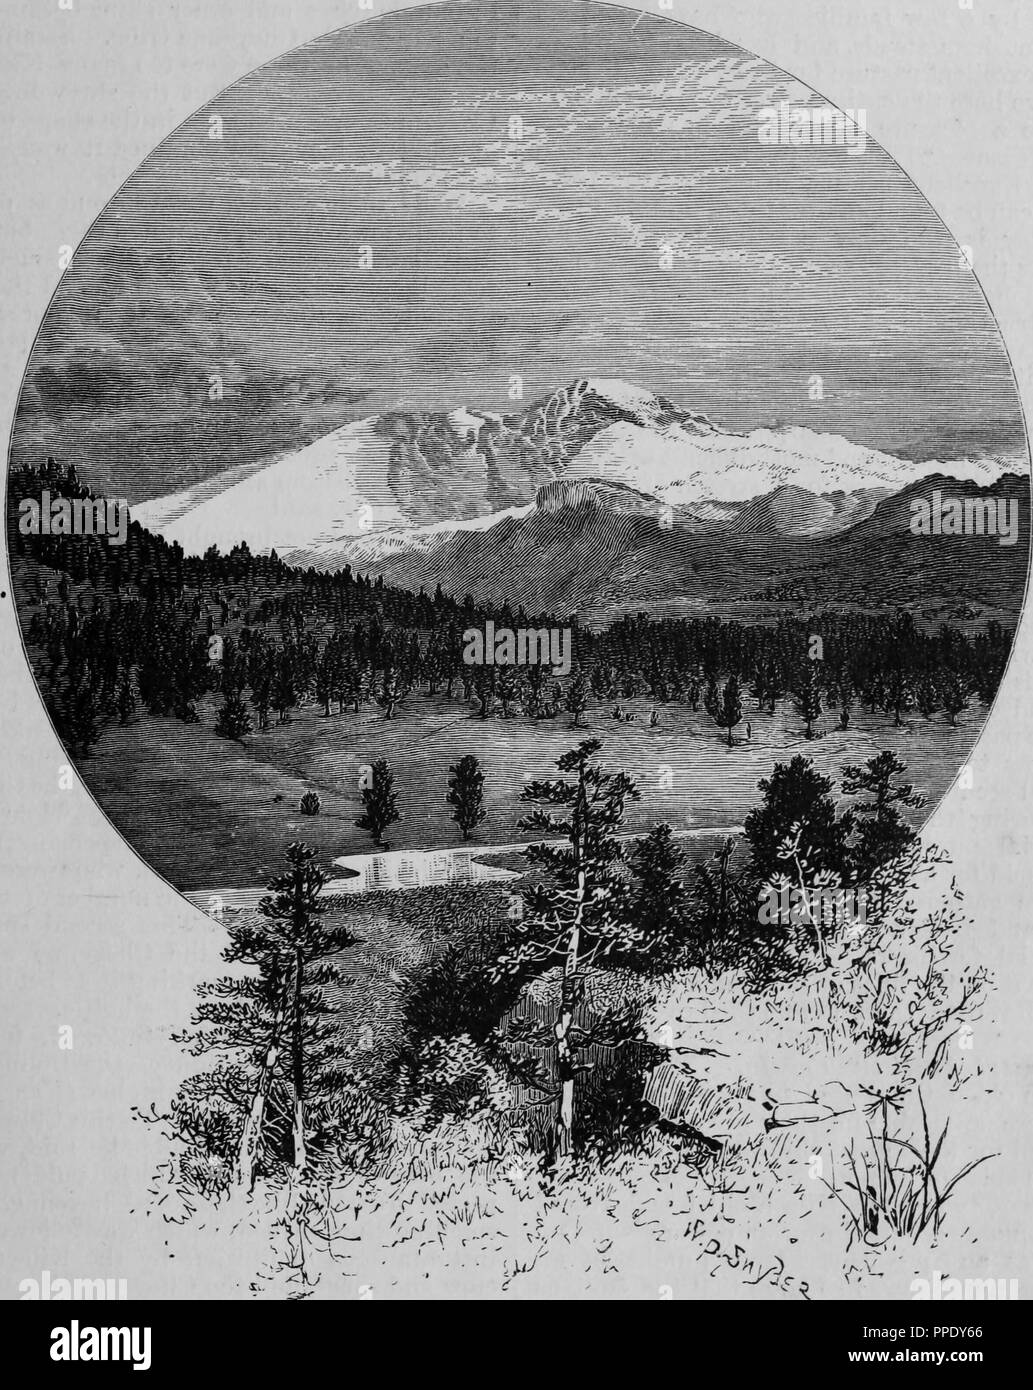 Engraving of Long's Peak viewed from the Estes Park, from the book 'The Pacific tourist', 1877. Courtesy Internet Archive. () - Stock Image